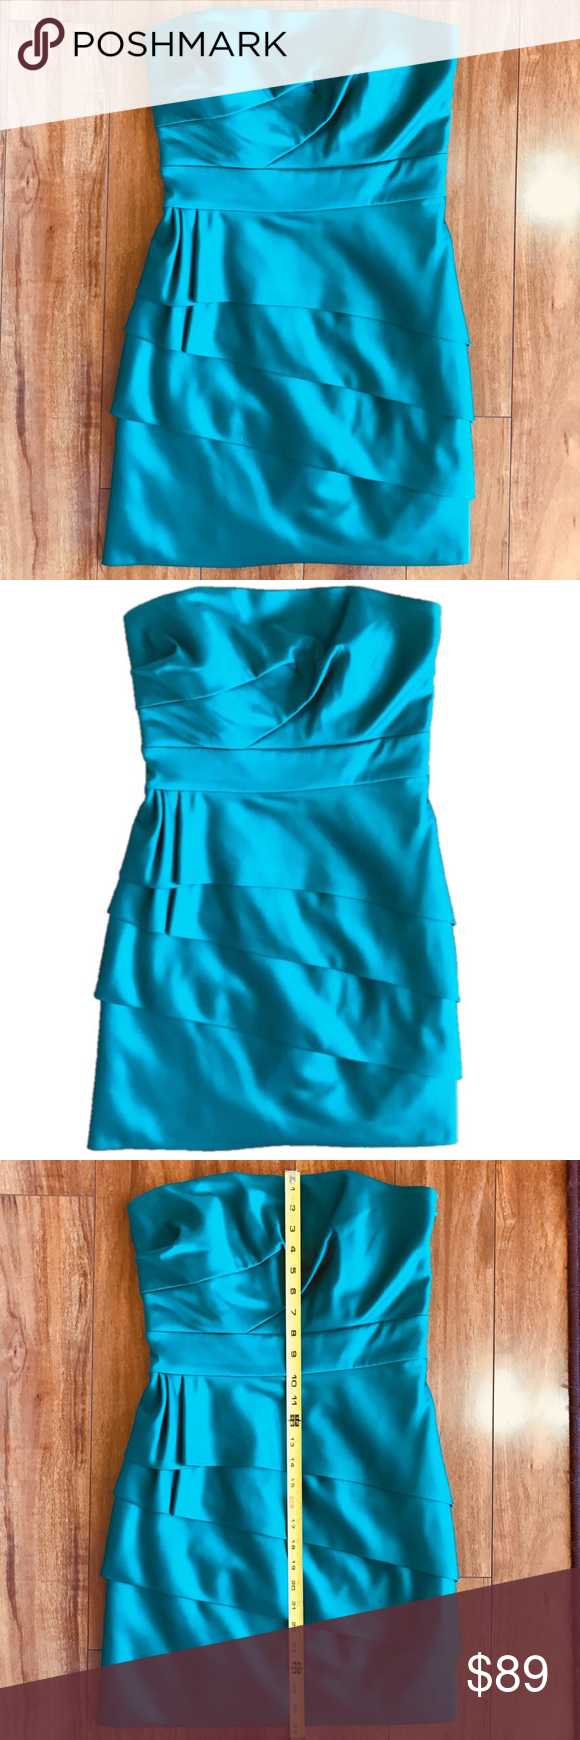 BCBG Strapless Teal Party Dress Size 6 | Teal party, Body shapes and ...